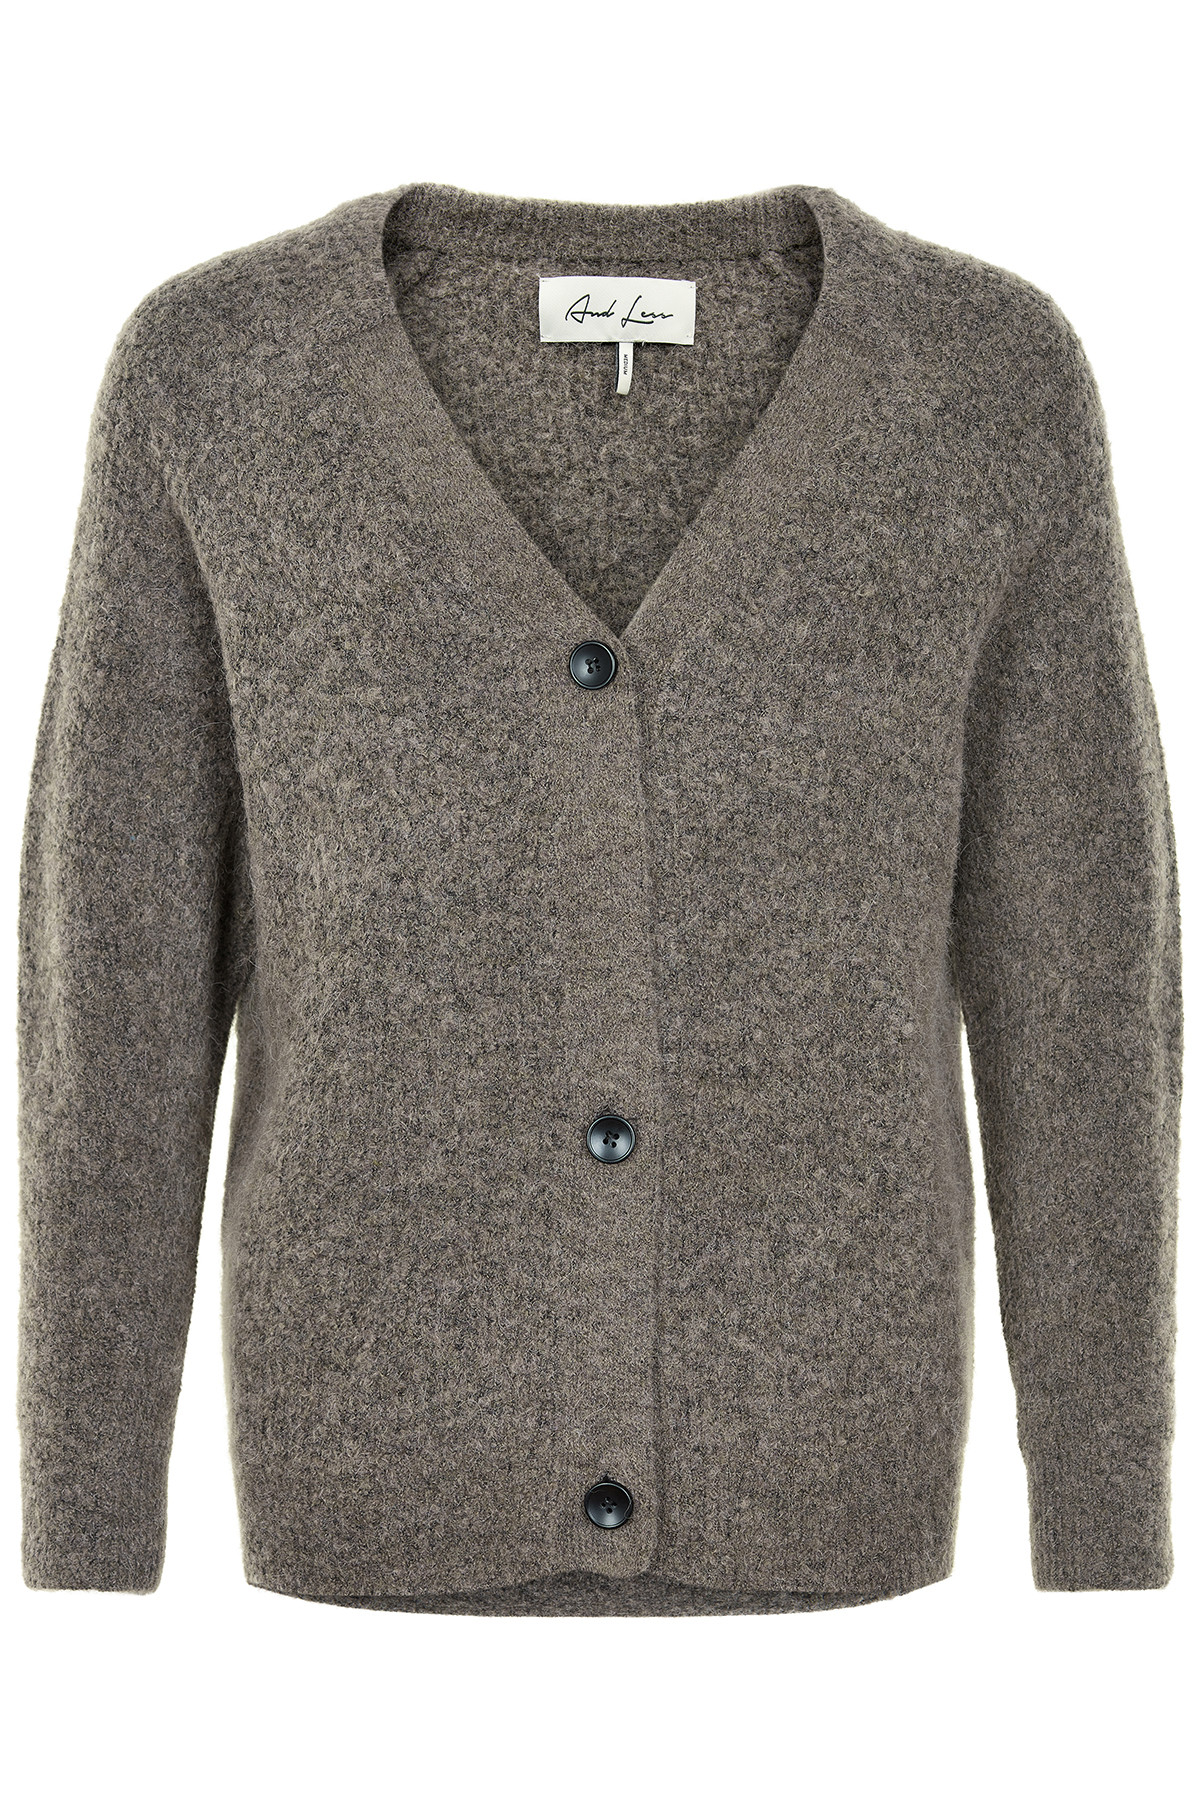 Image of   AND LESS ALENEN CARDIGAN 5519210 W (Walnut, L)